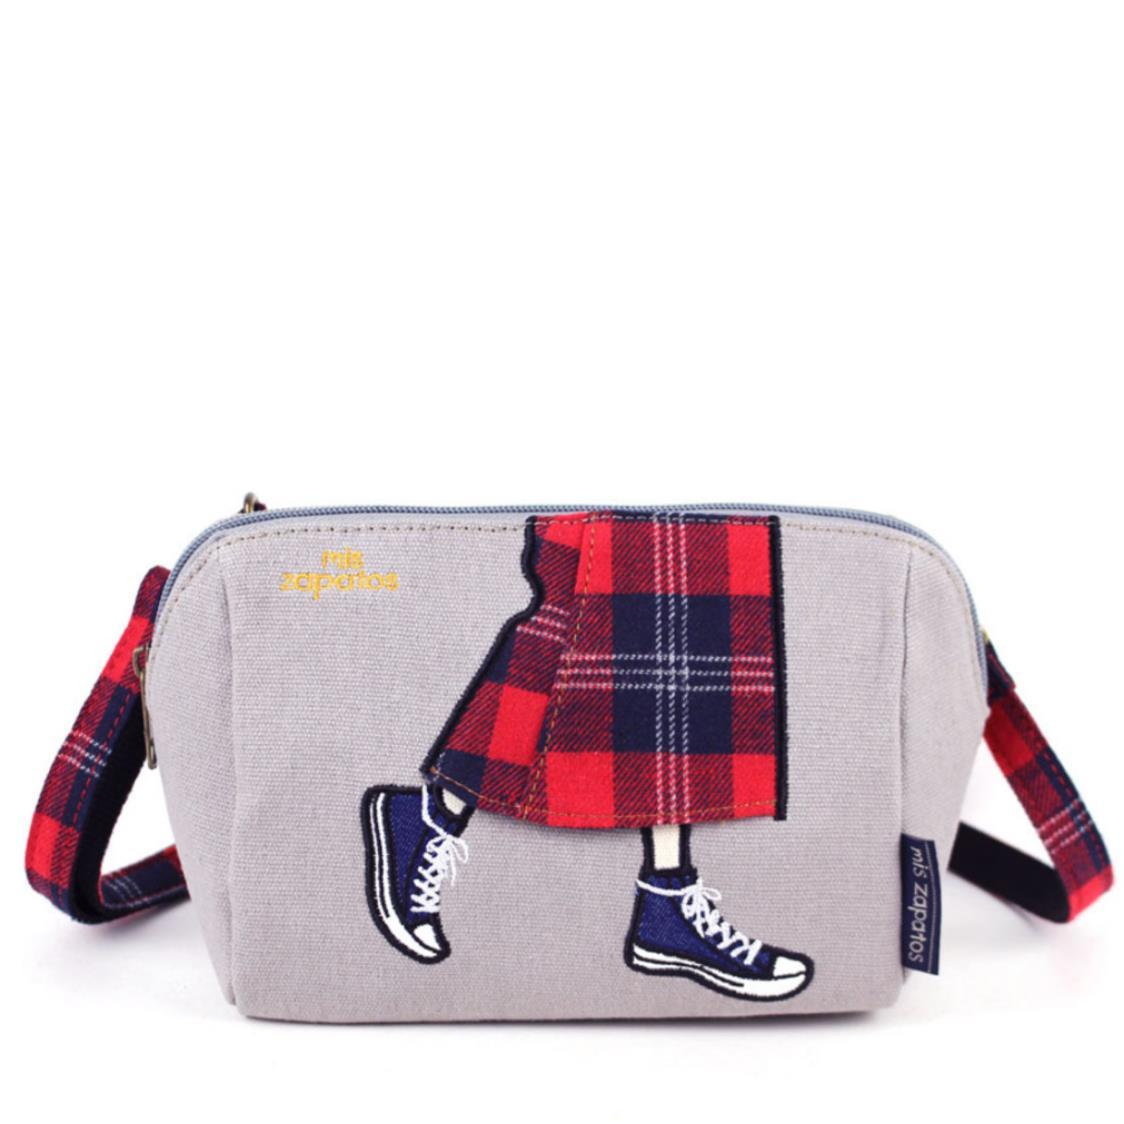 2-Way Use Jeans Skirt with Sneakers Slingbag Grey